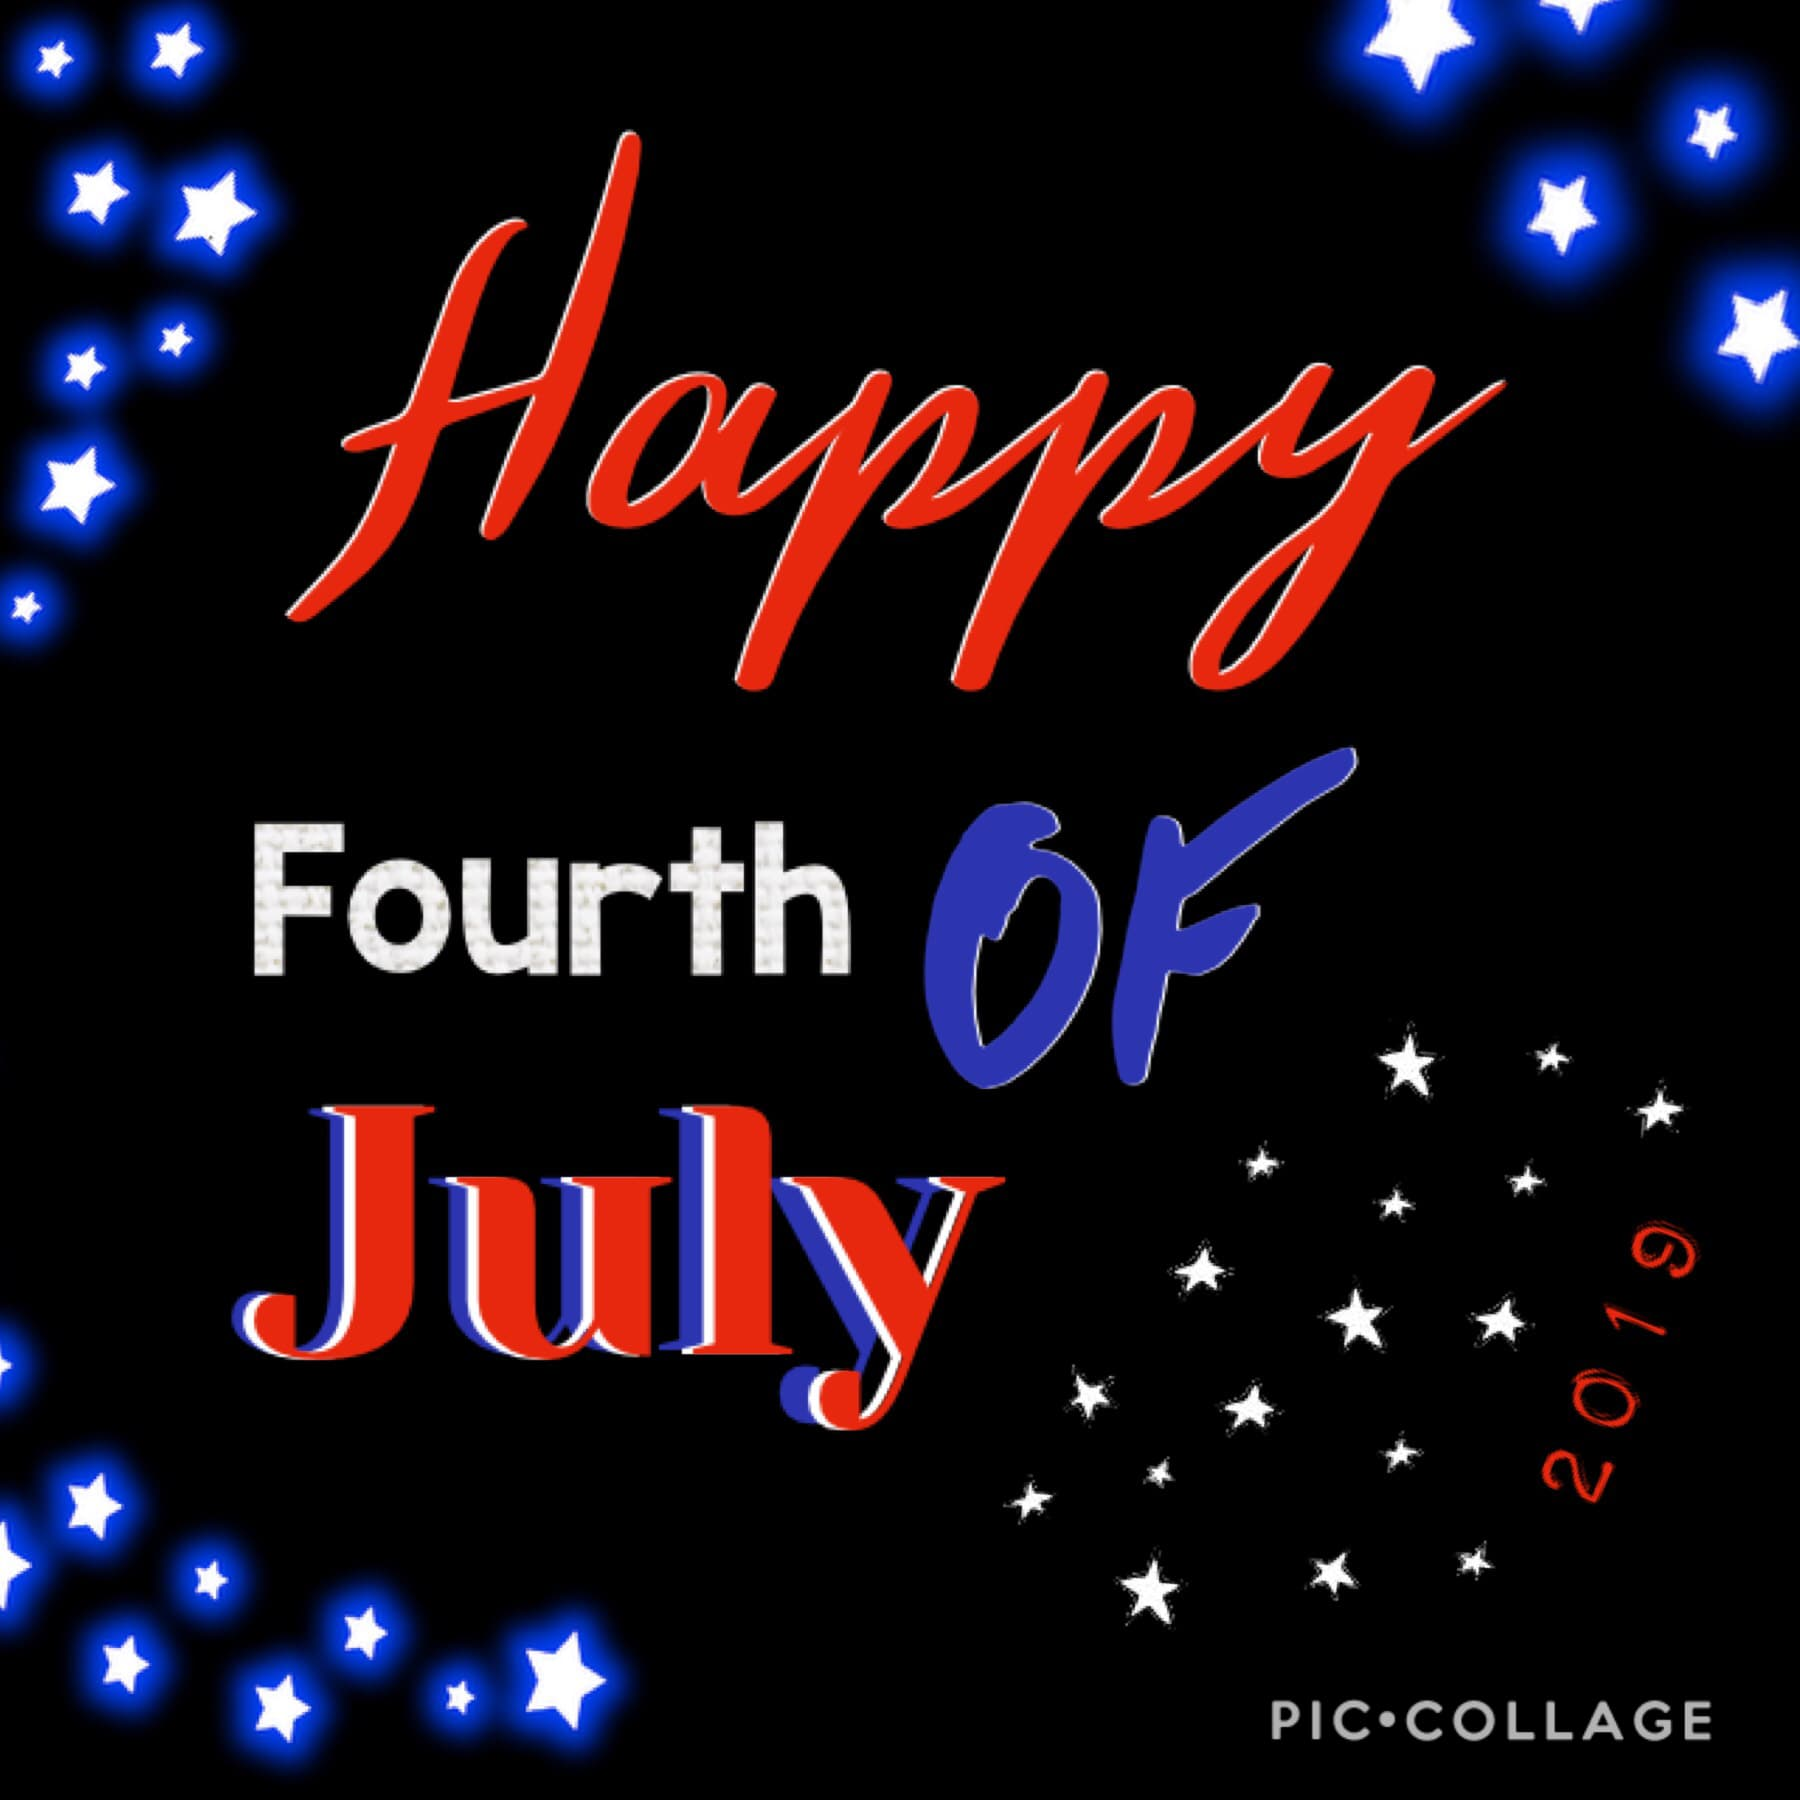 Happy 4th of July❗️🤩 🇺🇸 🍦 🎆 💙 🦅 🎈 🌟 🍽 🎊 🗽 🎶 I went to my cousins' for a cookout earlier today, we went swimming. 🤽🏻♀️💦 🌭 And then tonight I did some mini fireworks and stuff, so it was a pretty good day. 🎇 What did y'all do? 🧐 I've been so tireddd. 💤